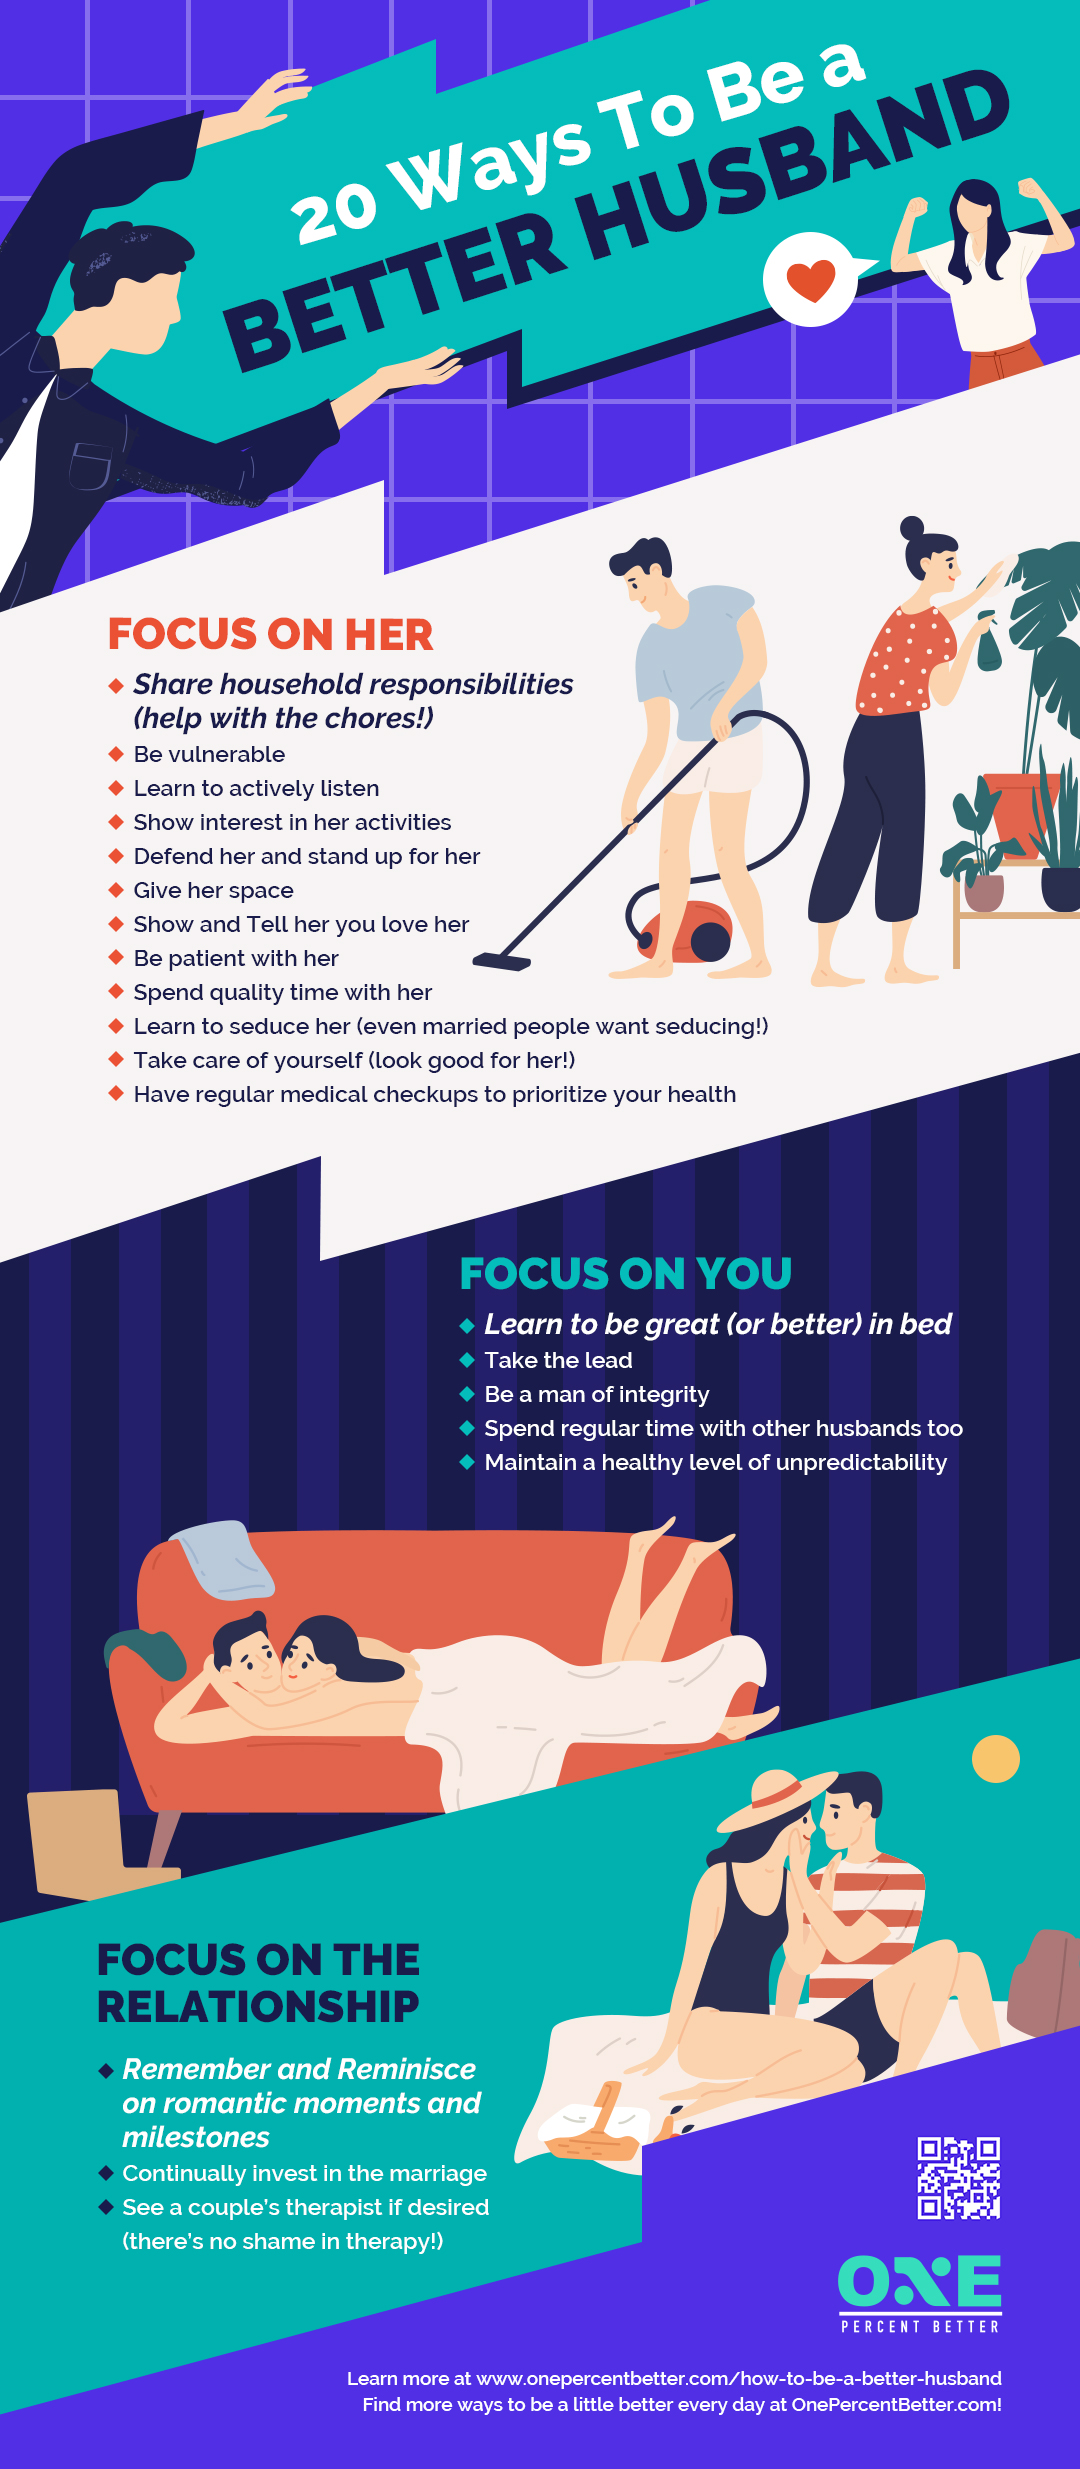 How To Be A Better Husband (20+ Simple Tips) [INFOGRAPHIC]